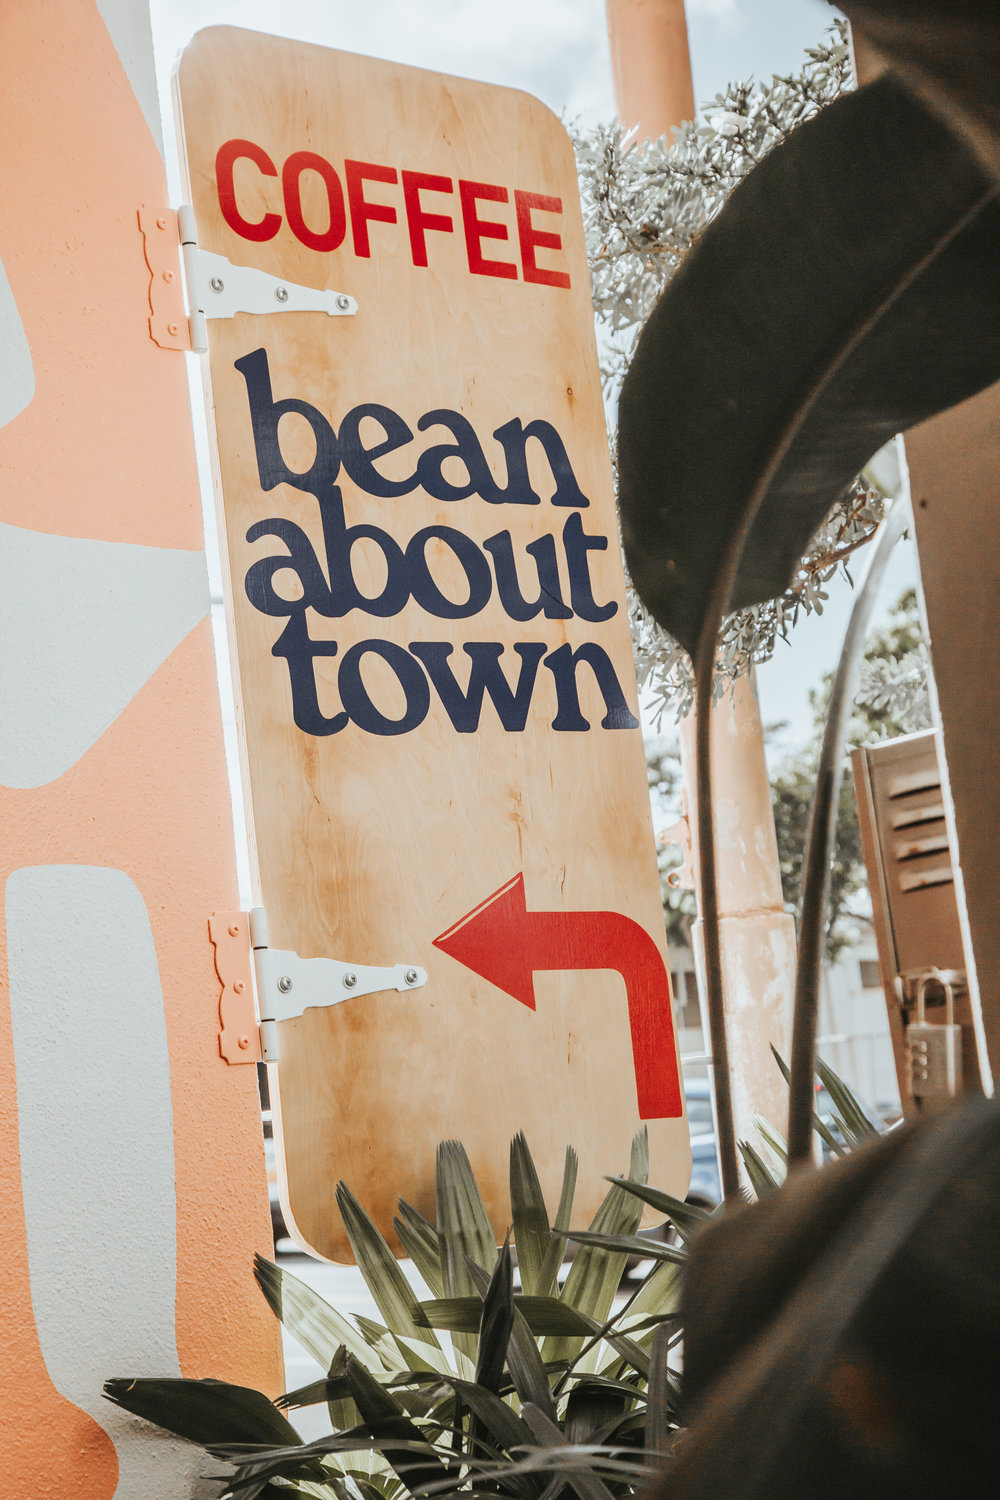 Bean About Town     has yummy pastries and ethically sourced coffee